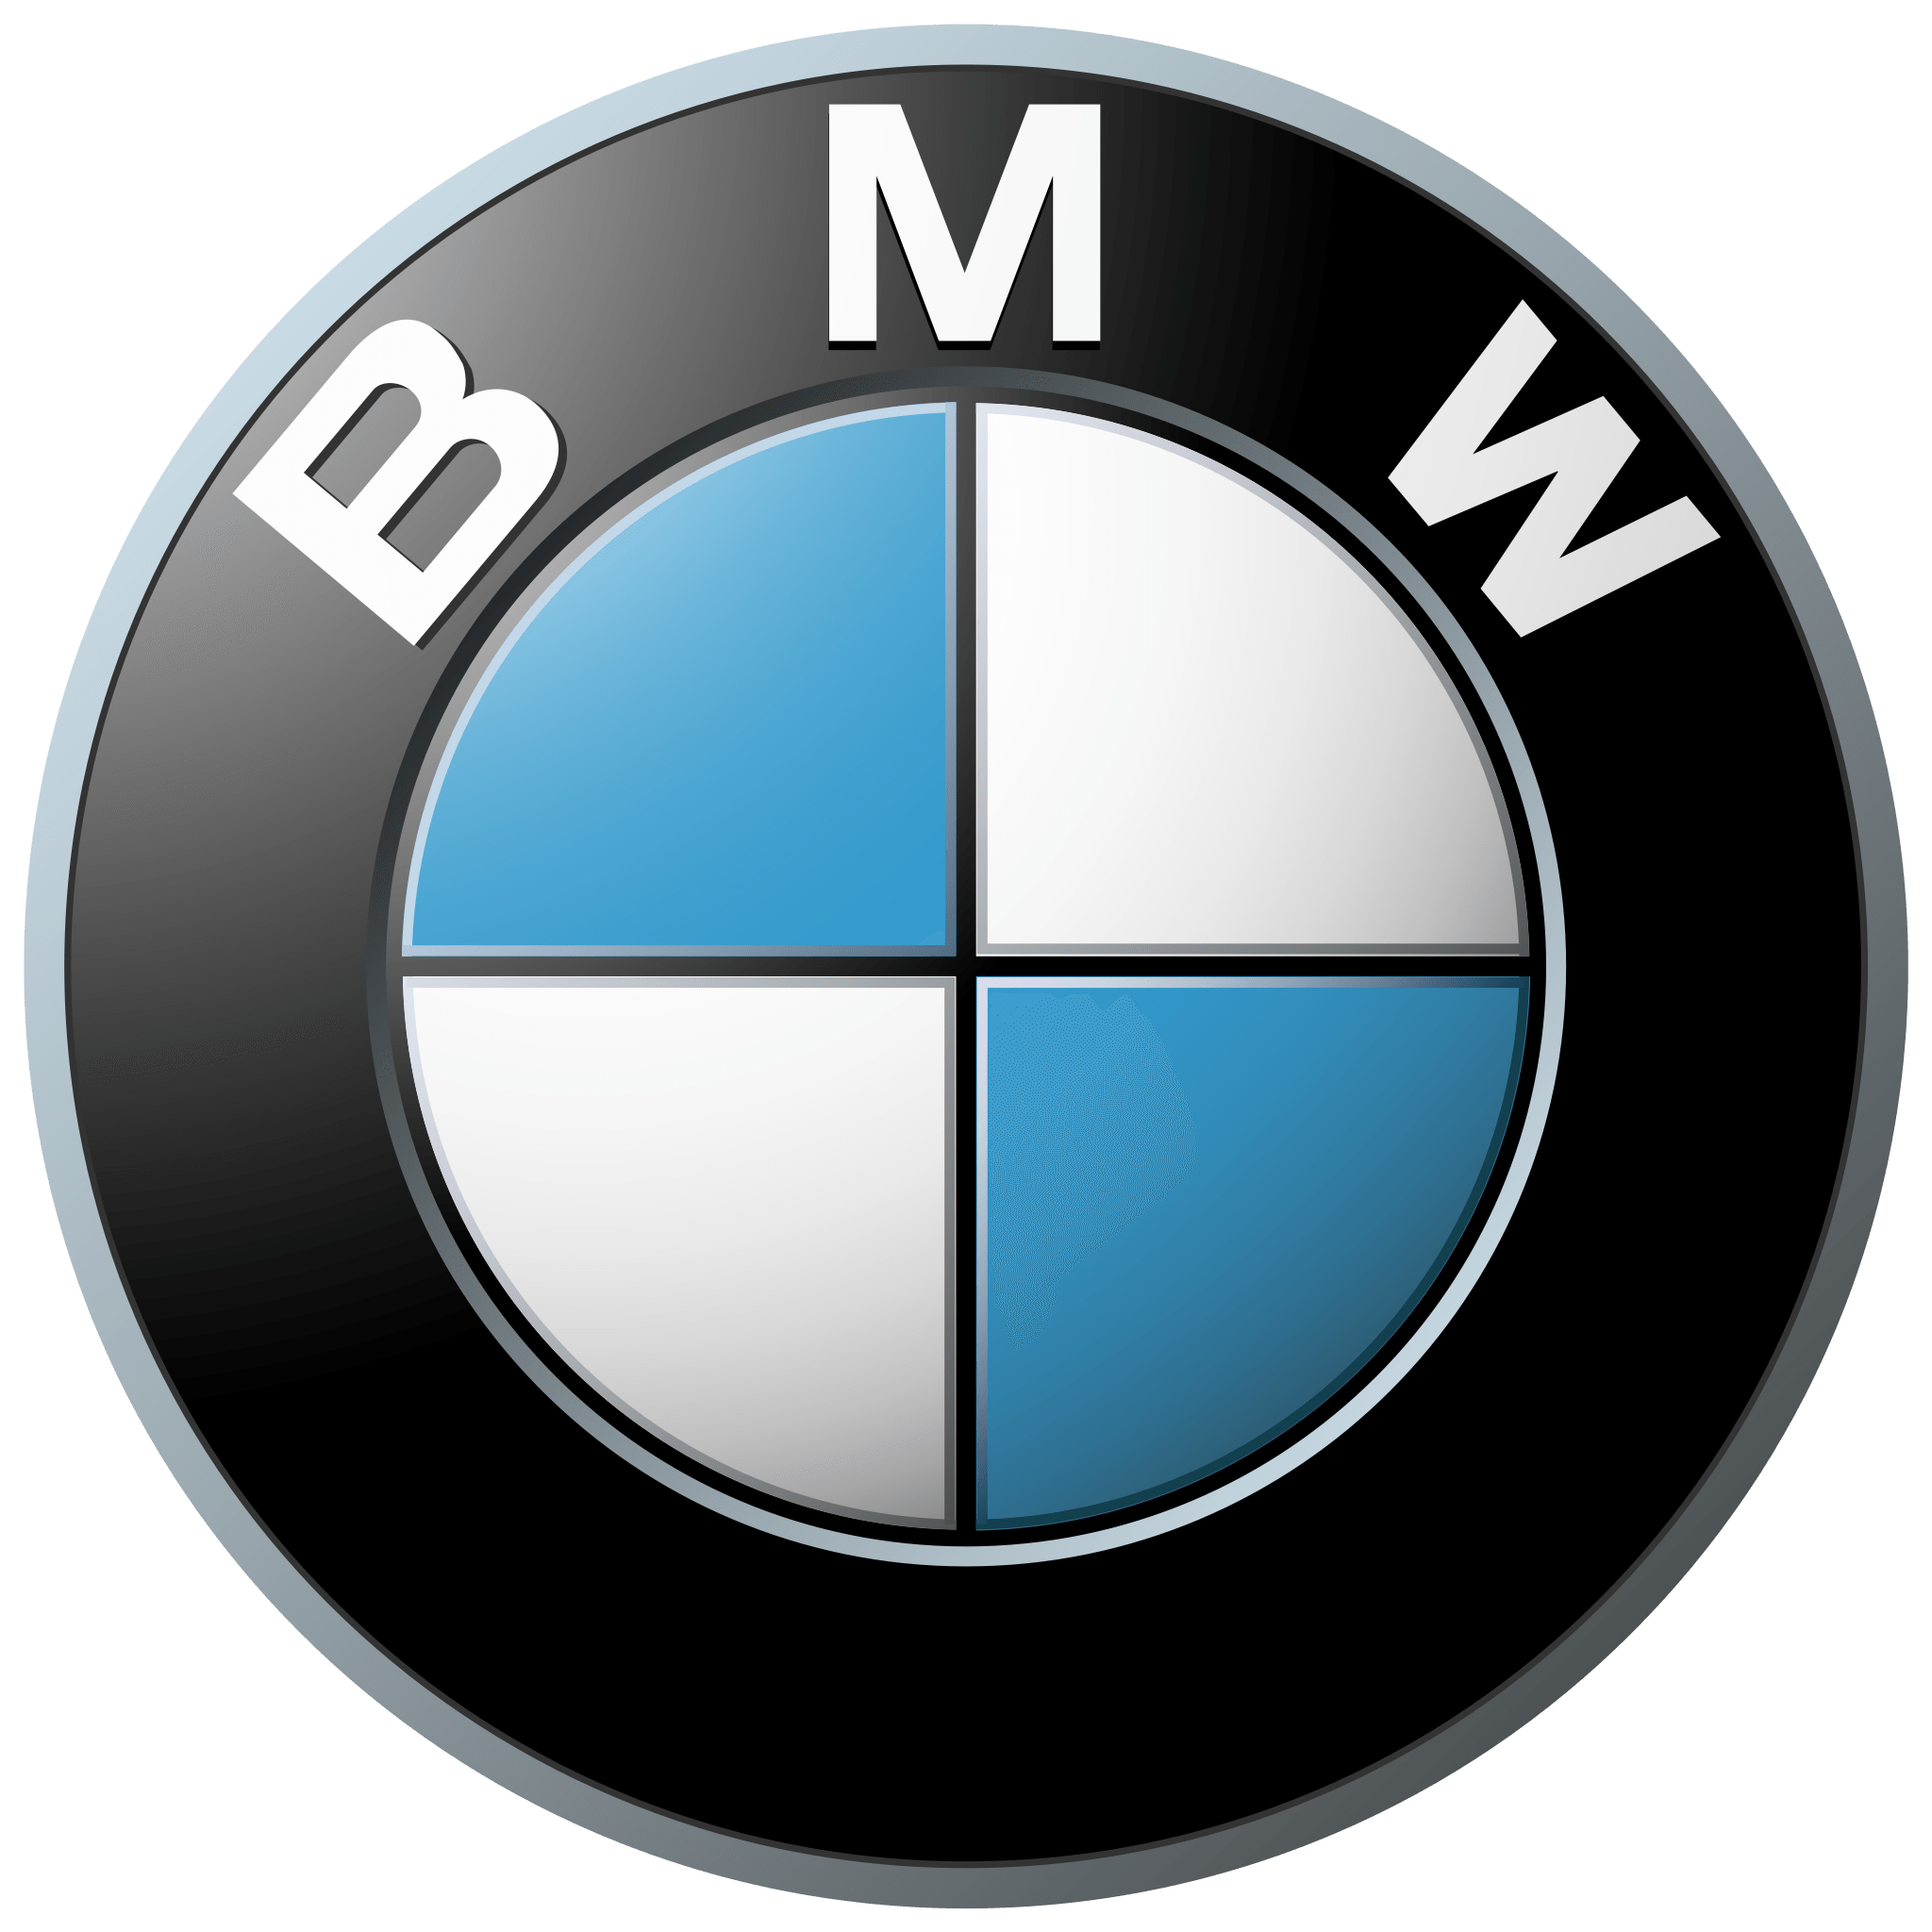 Car Logo Bmw - Car Logo PNG